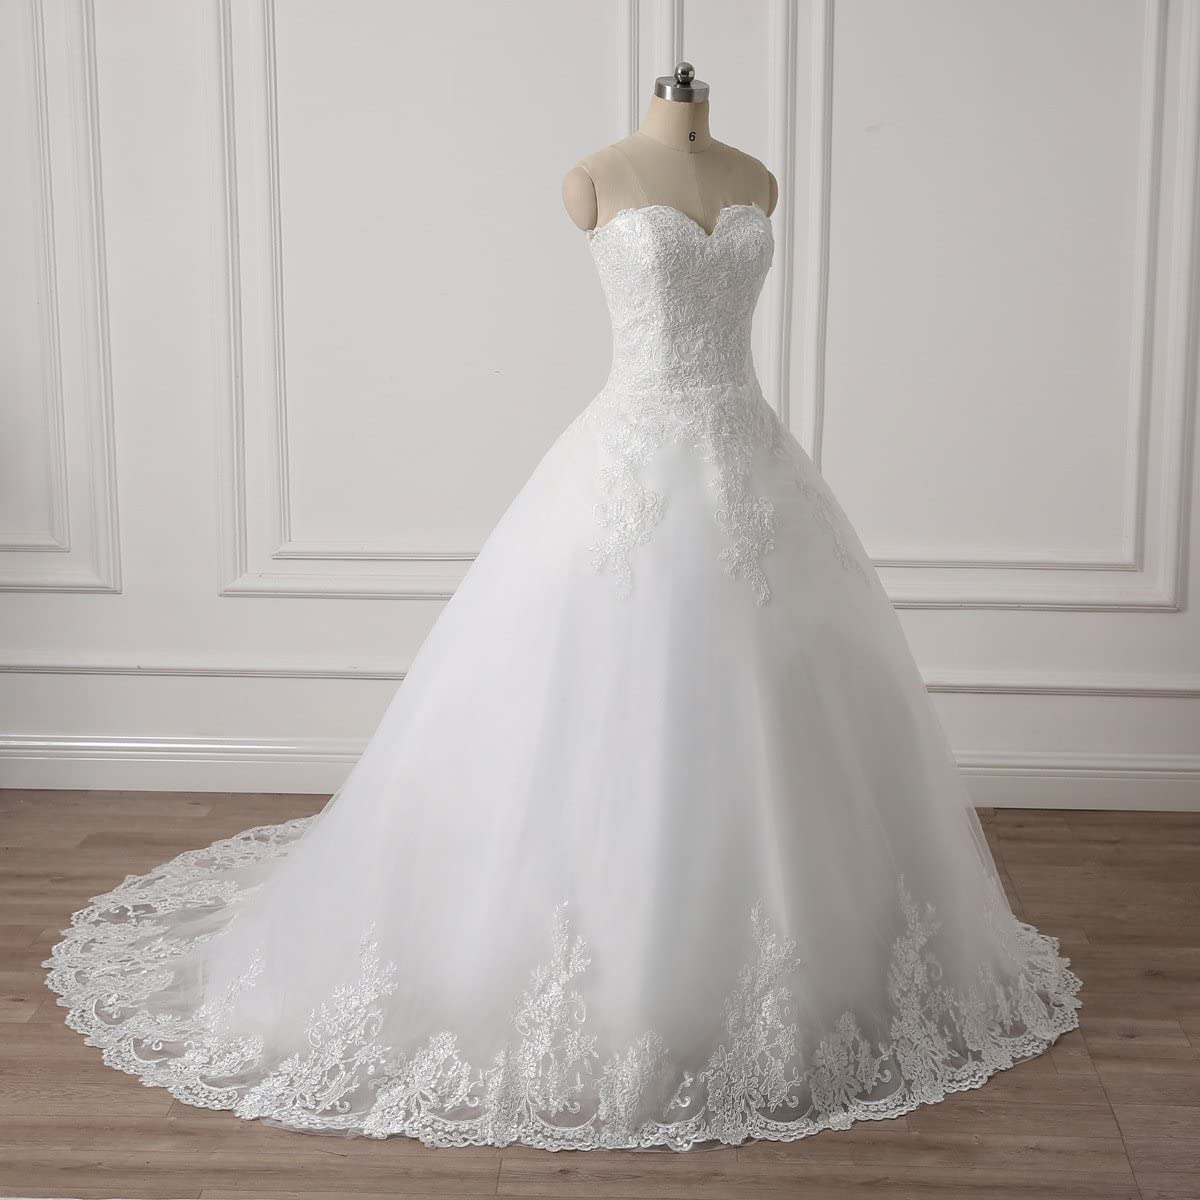 YIPEISHA Sweetheart Sleeveless Princess Lace Wedding Dresses A-line Tulle Corset Puffy Bridal Gown